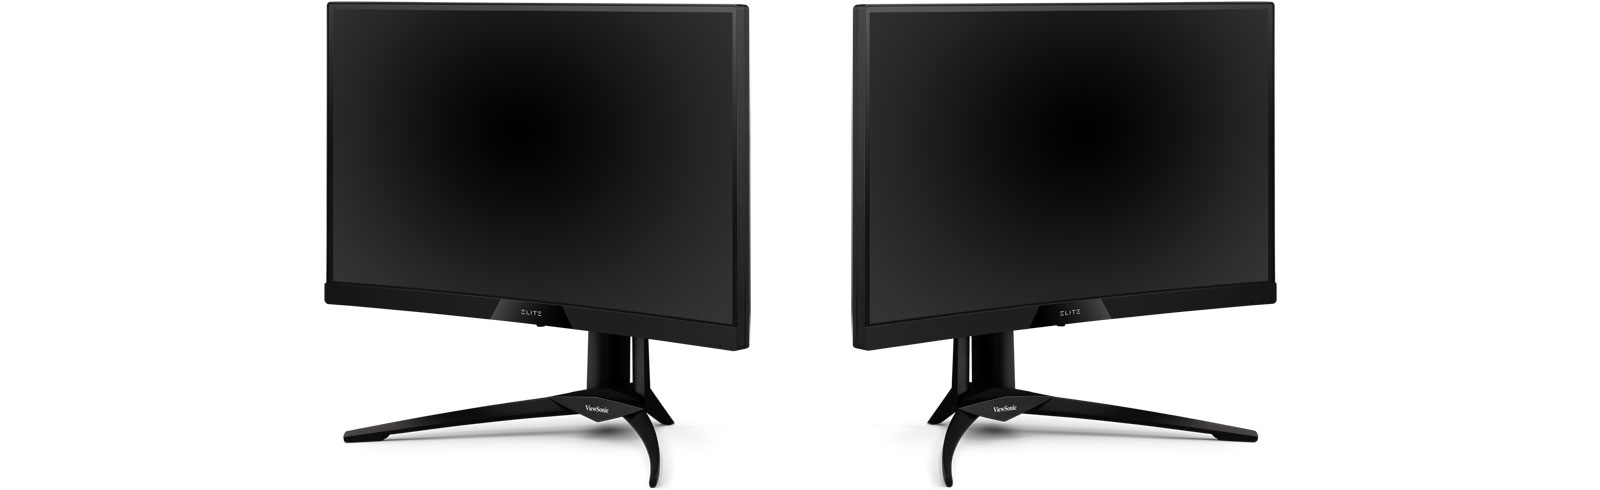 "ViewSonic XG270QC is a 27"" curved QHD desktop monitor with 165Hz refresh rate"